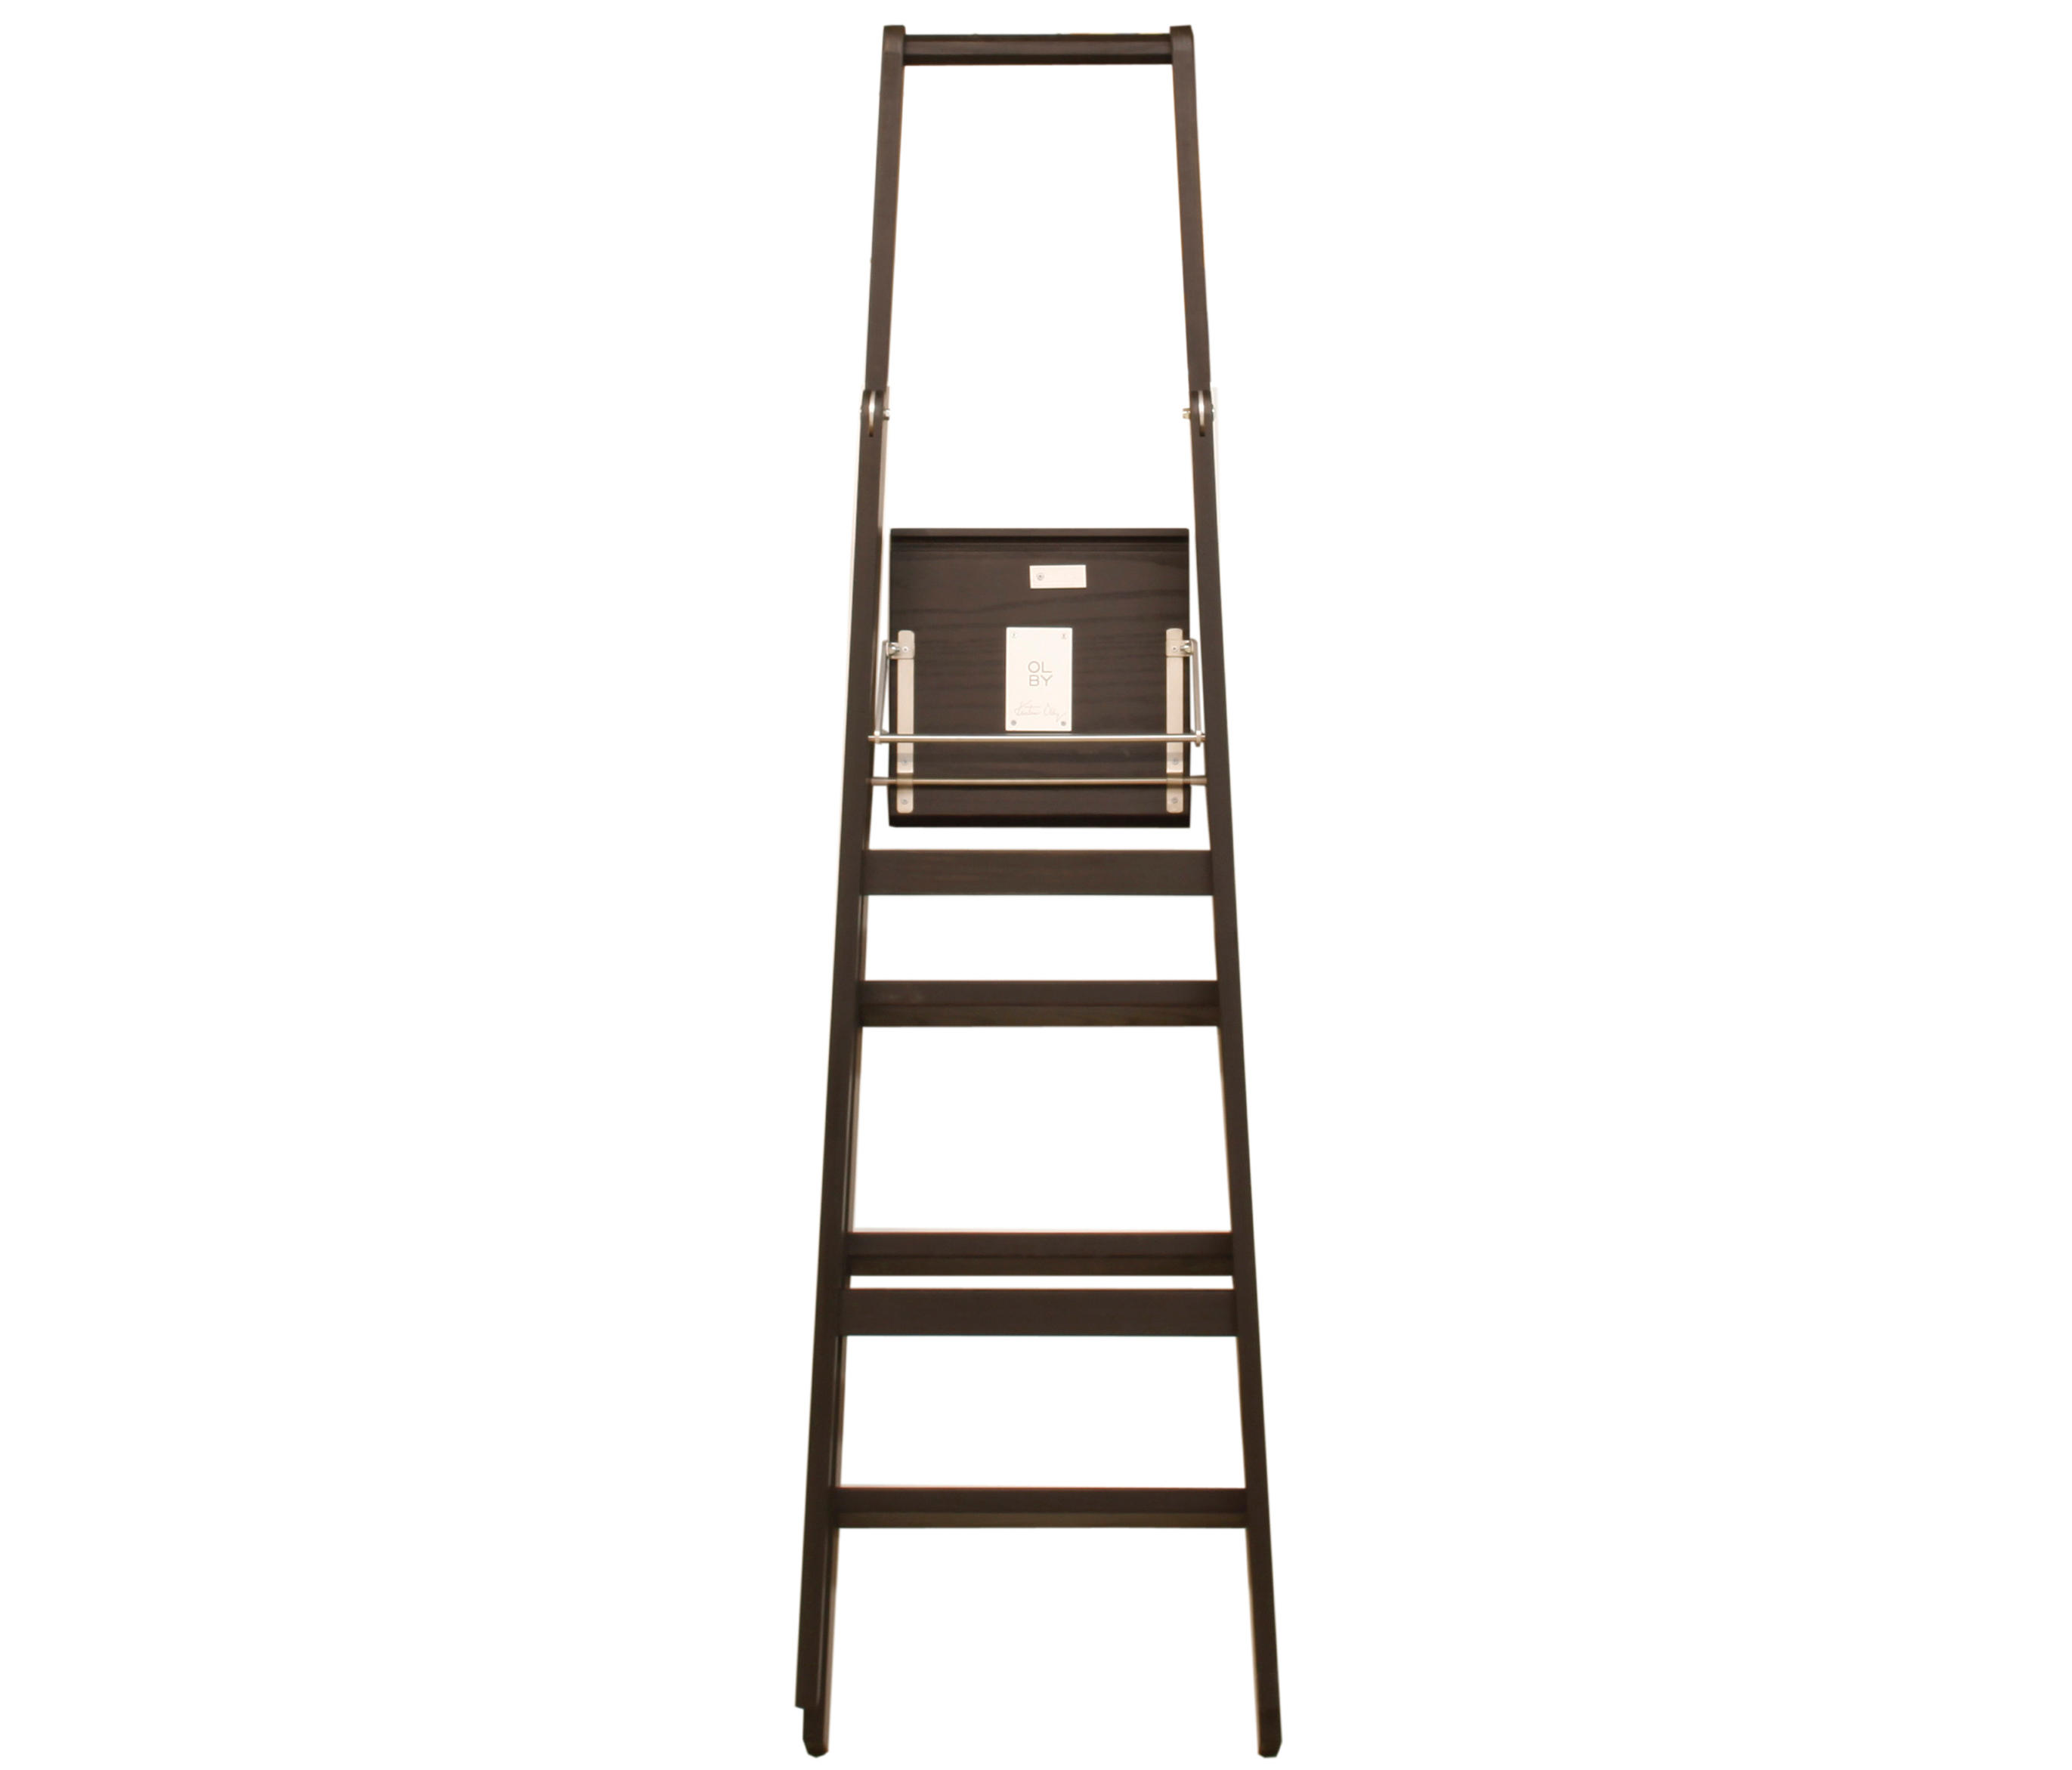 designer kitchen step ladder step up step ladder library ladders from olby design 205